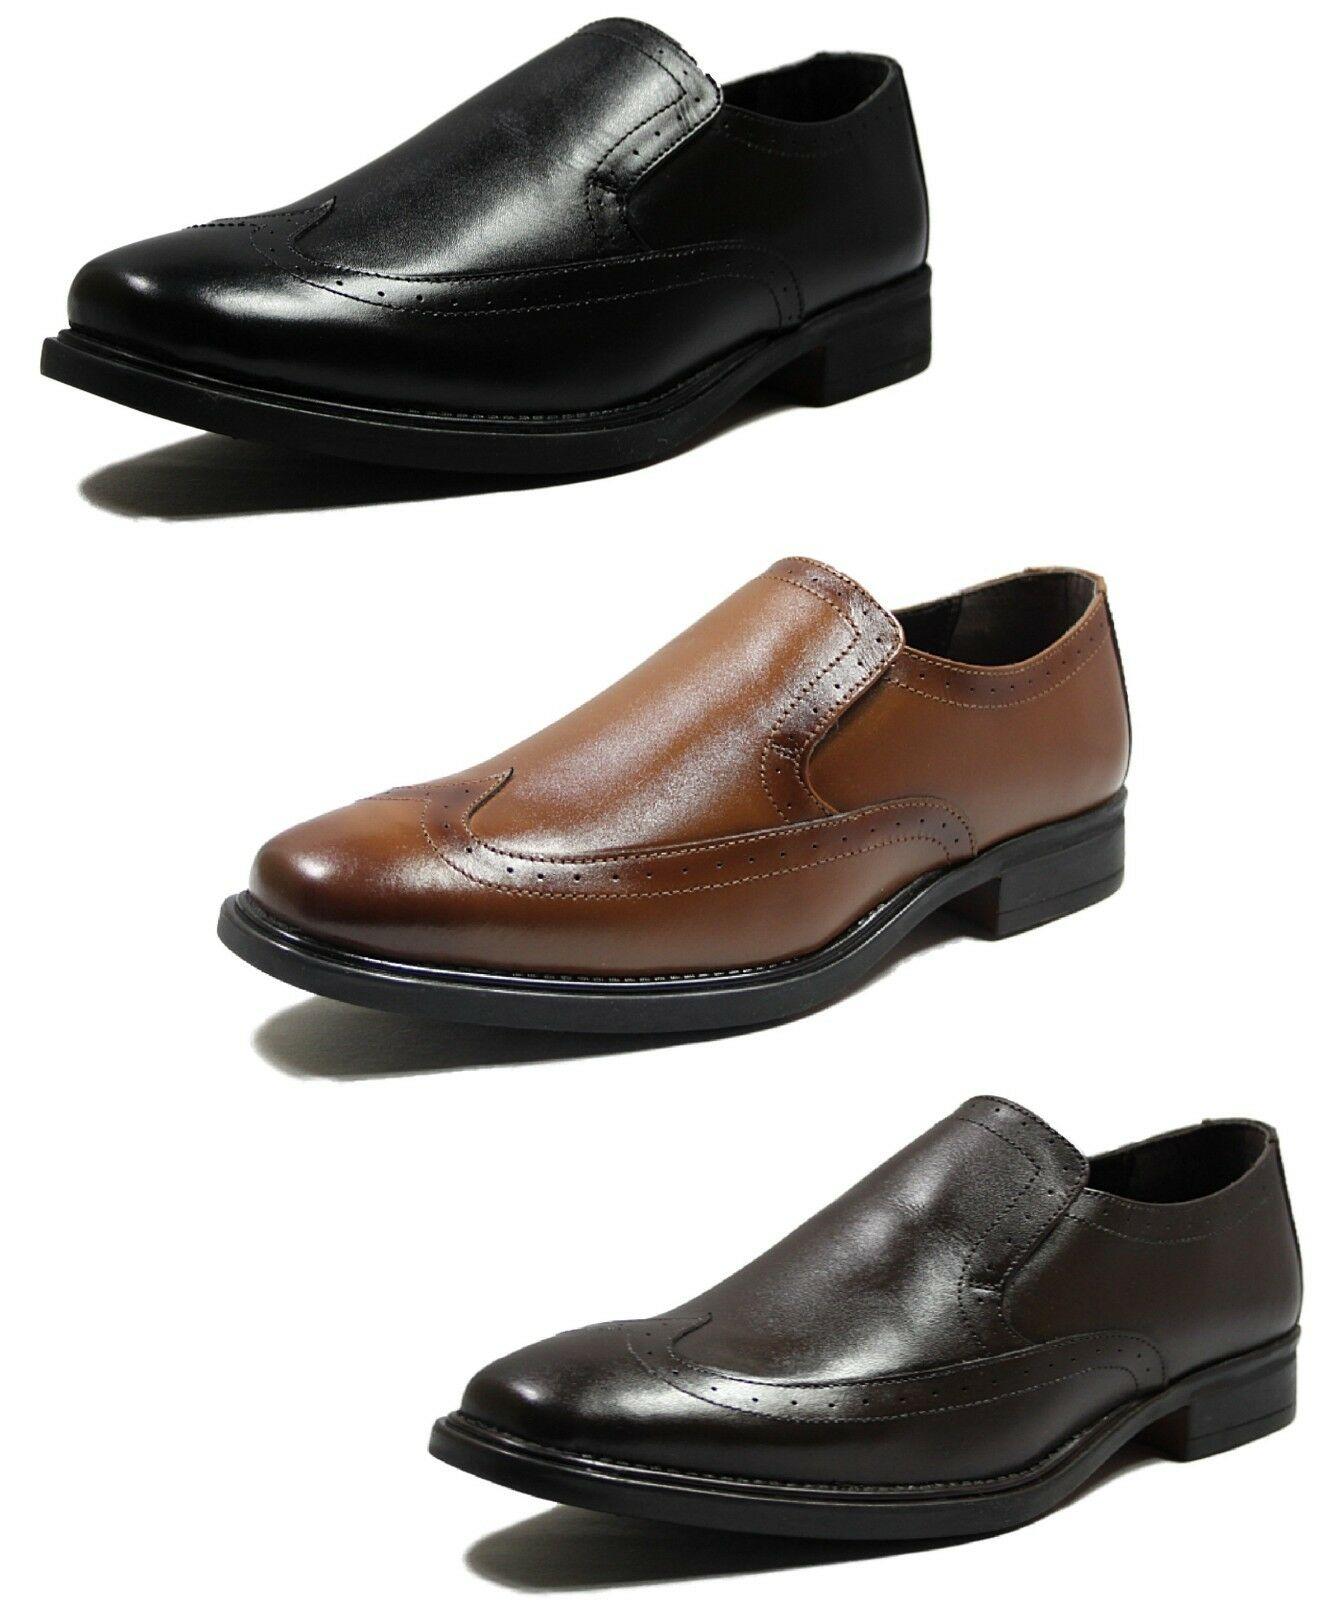 Mens New Lucini Leather Formal Office Party Slip on shoes in Black Tan Brown